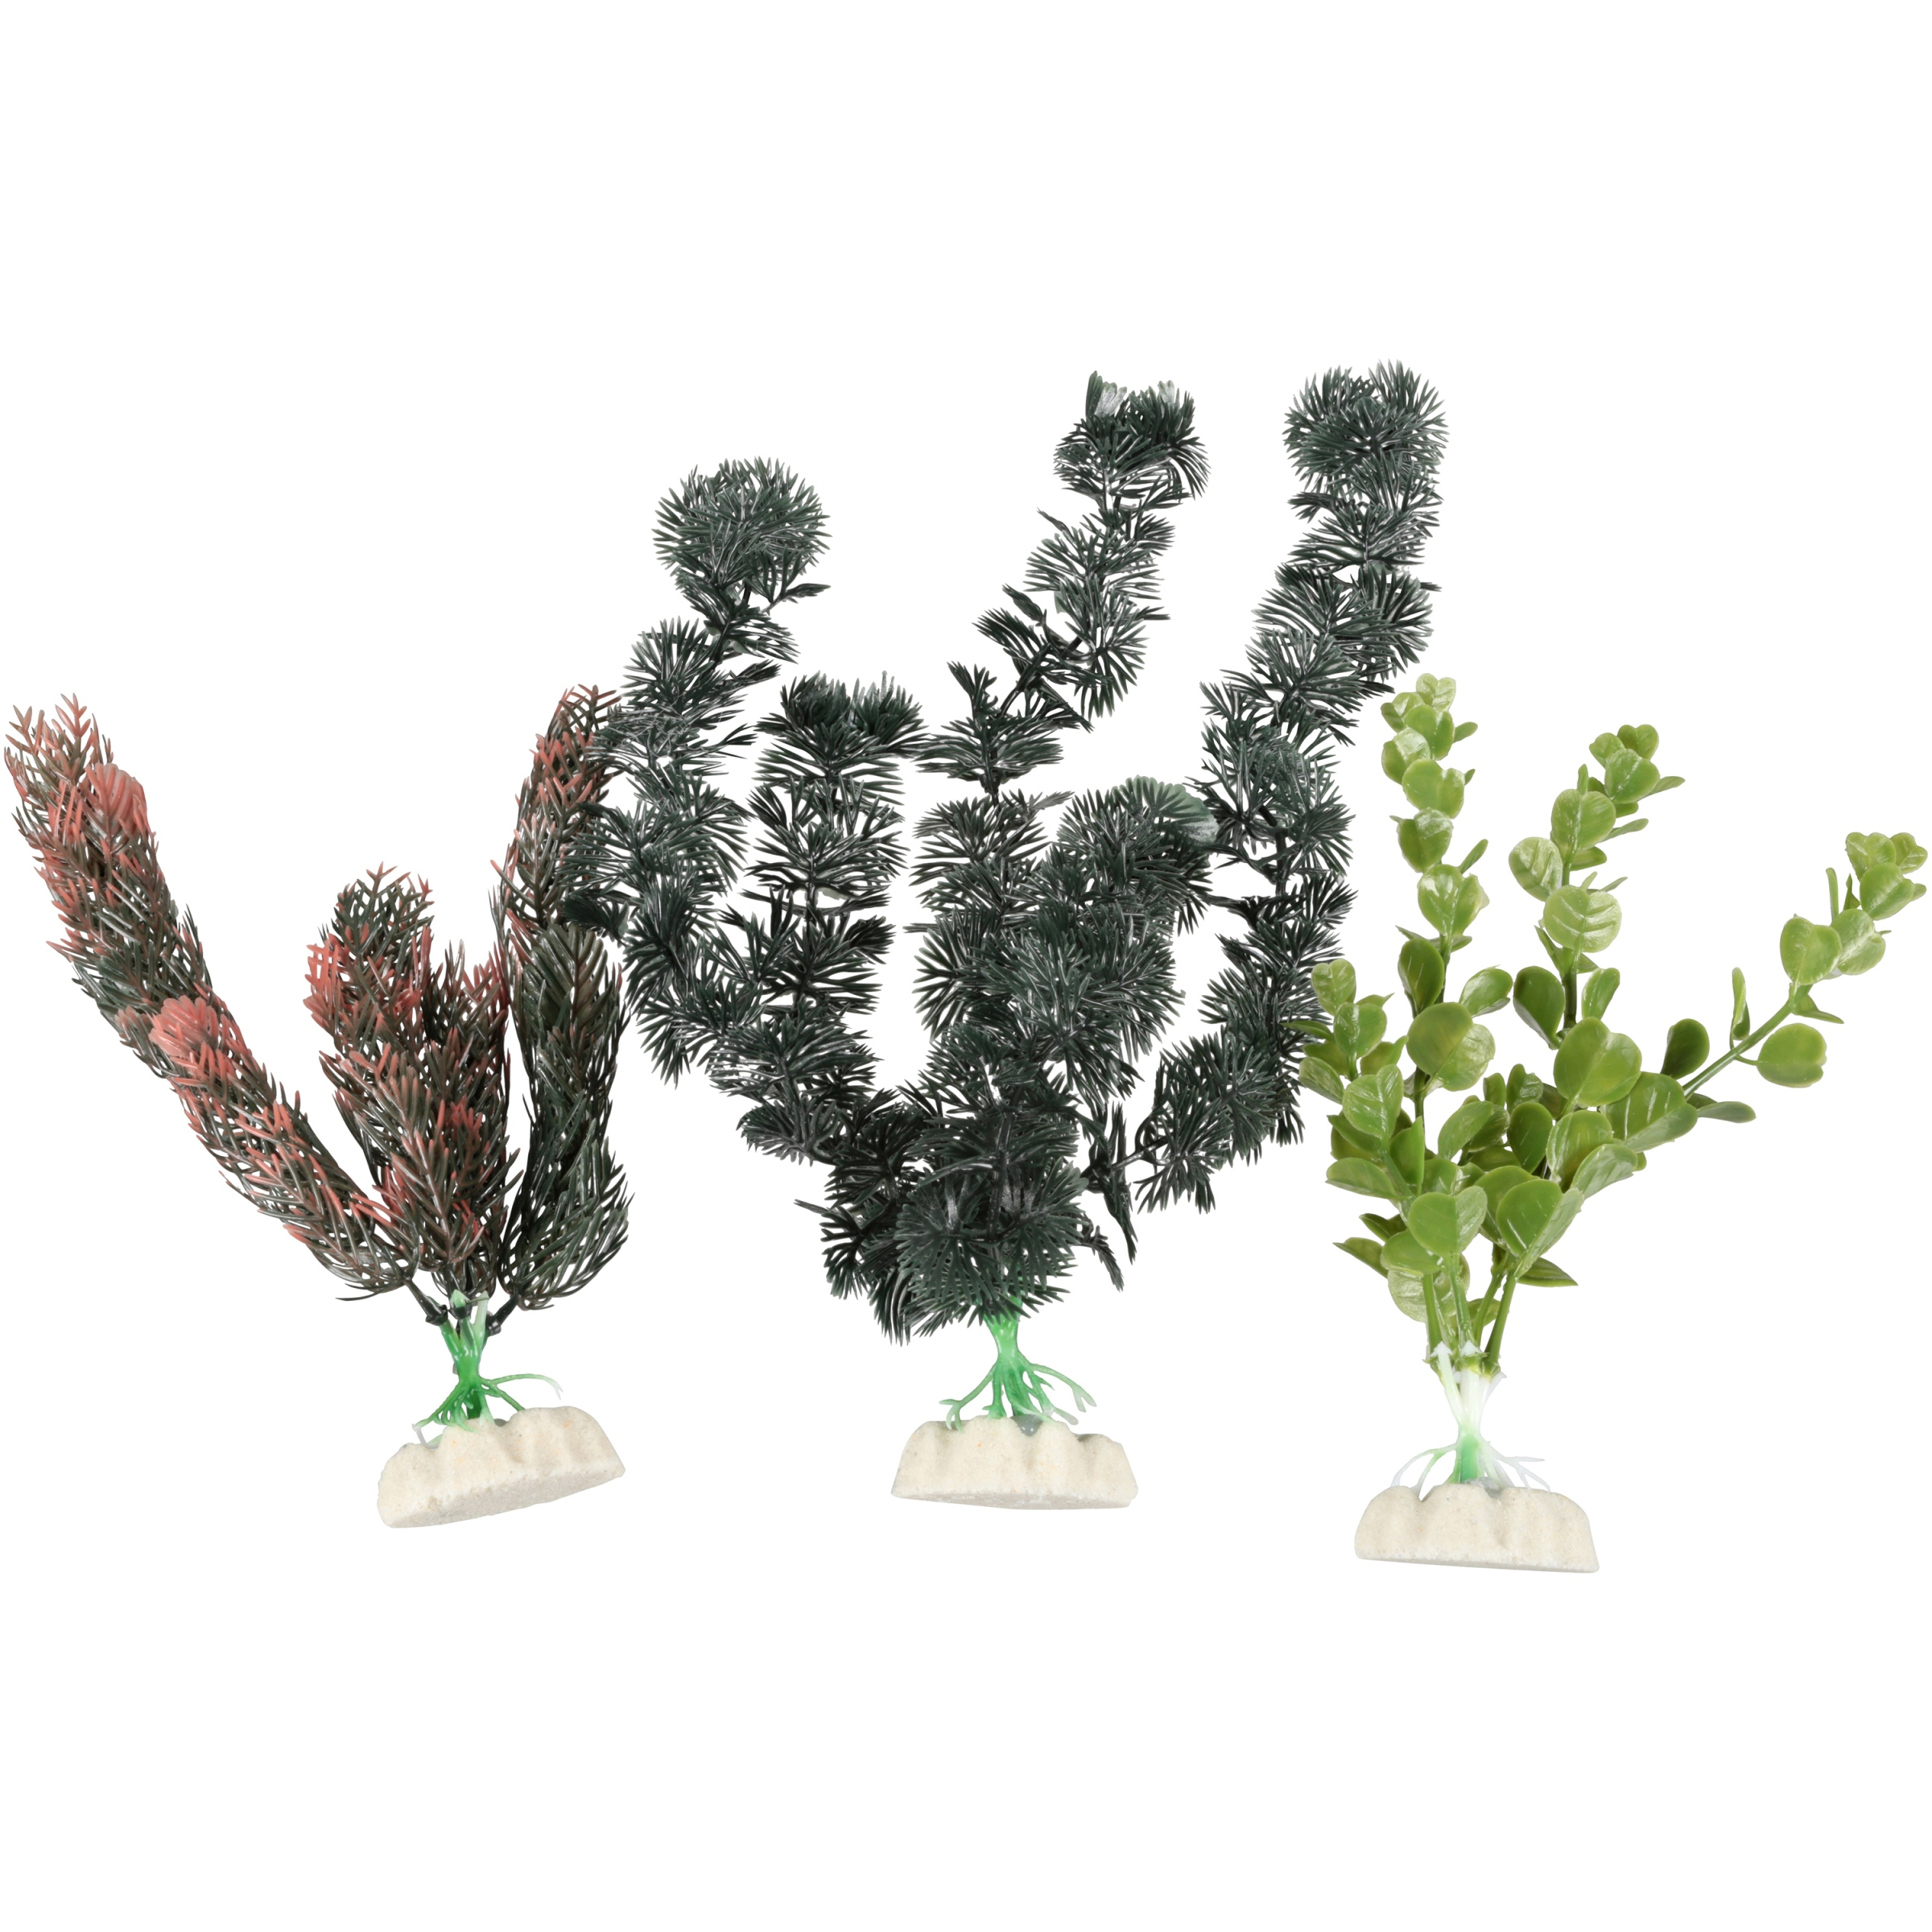 Aqua Culture Aquarium Plants 3-Piece Value Pack, 3-Pack